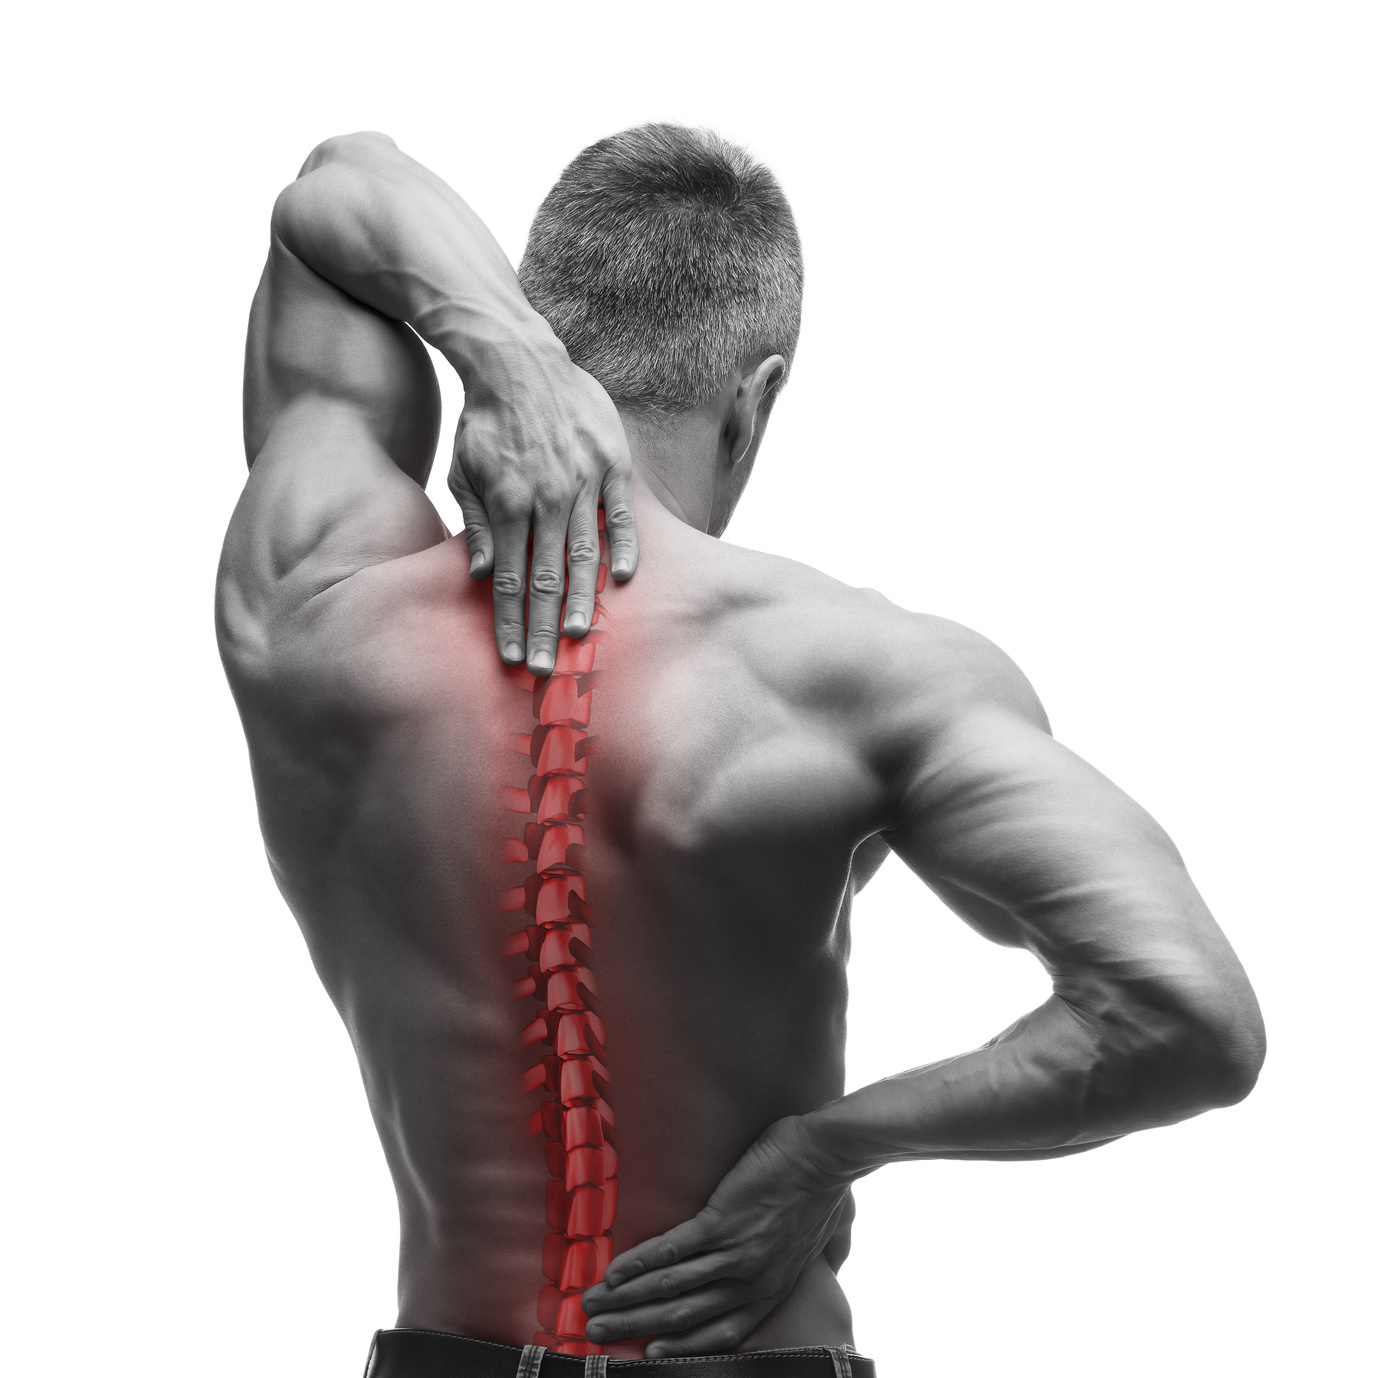 Spine pain, man with backache and ache in the neck